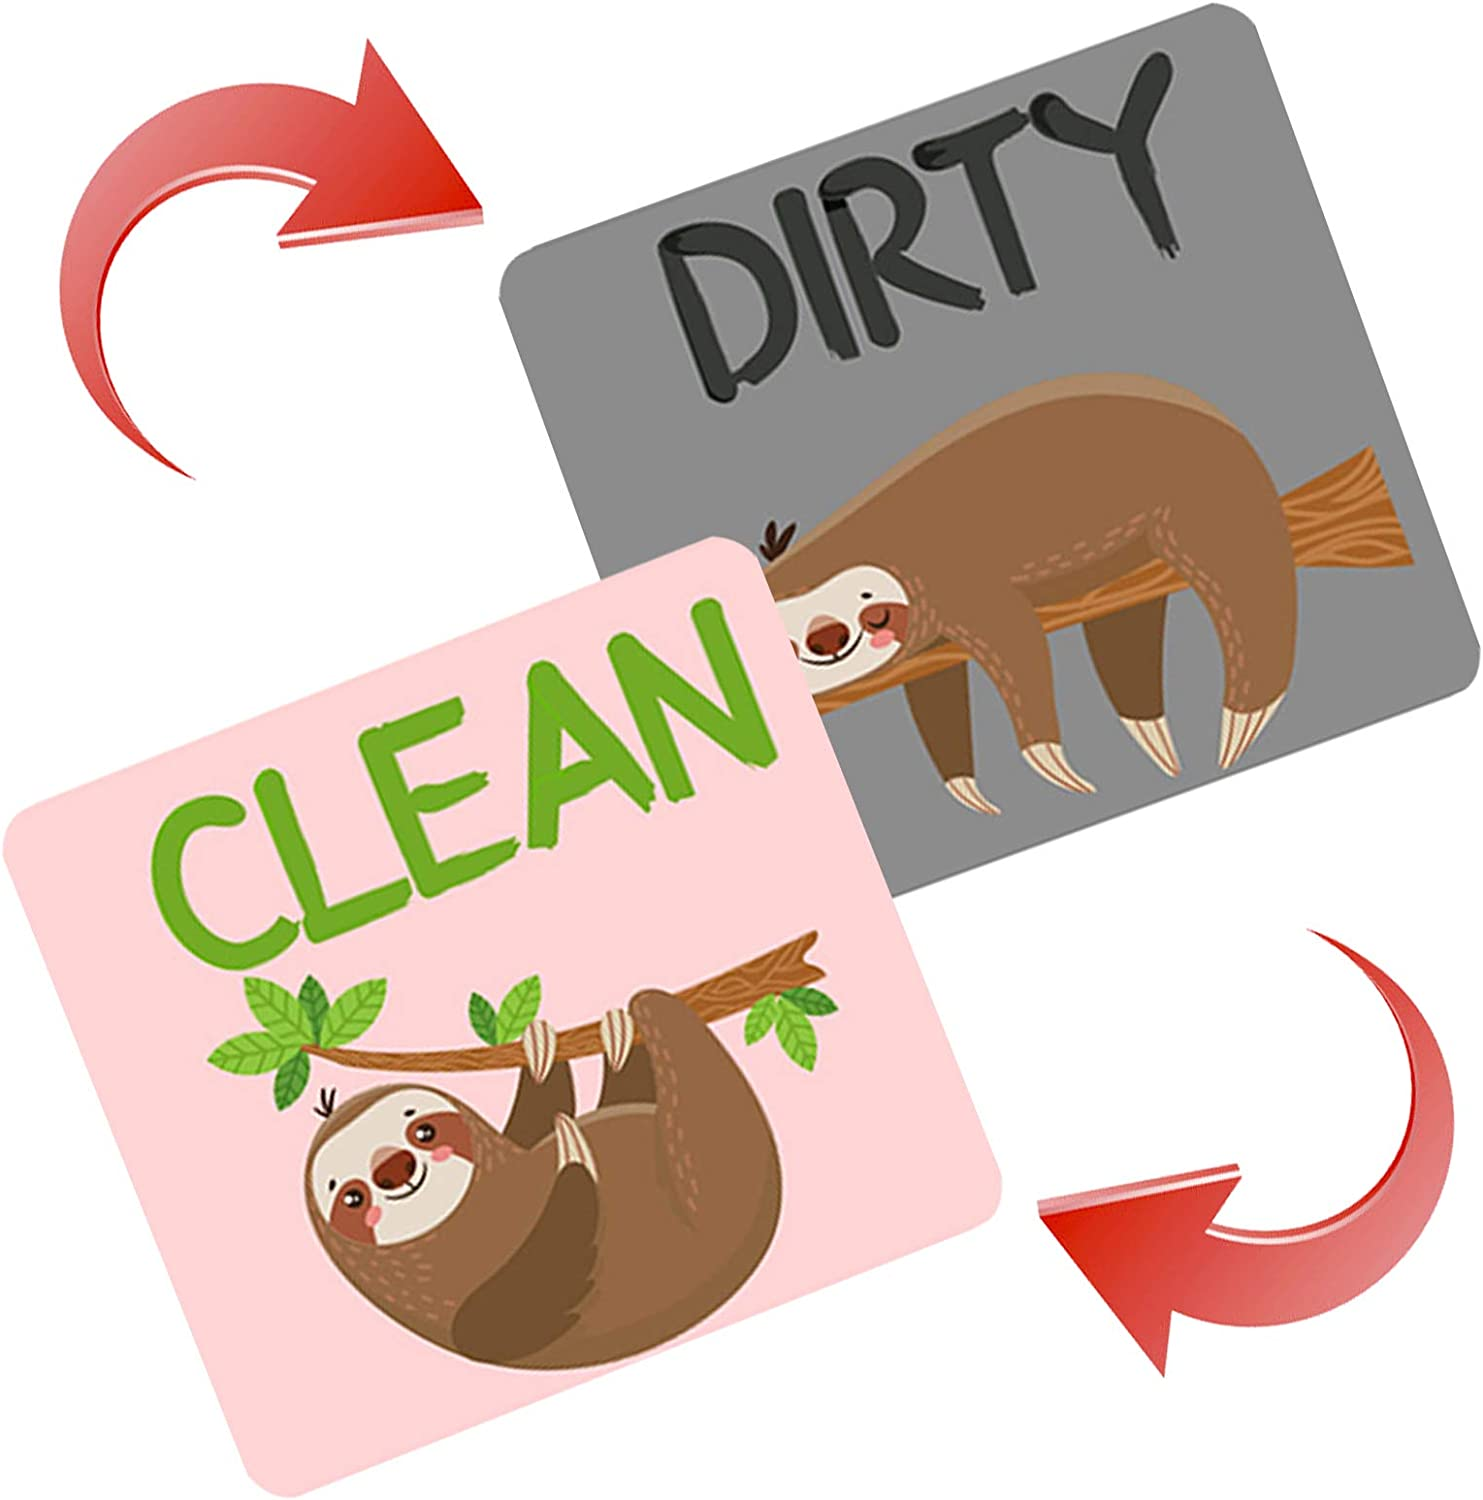 PASHOP Regular store Dishwasher Max 64% OFF Clean Dirty Clea Magnet Sign Signs